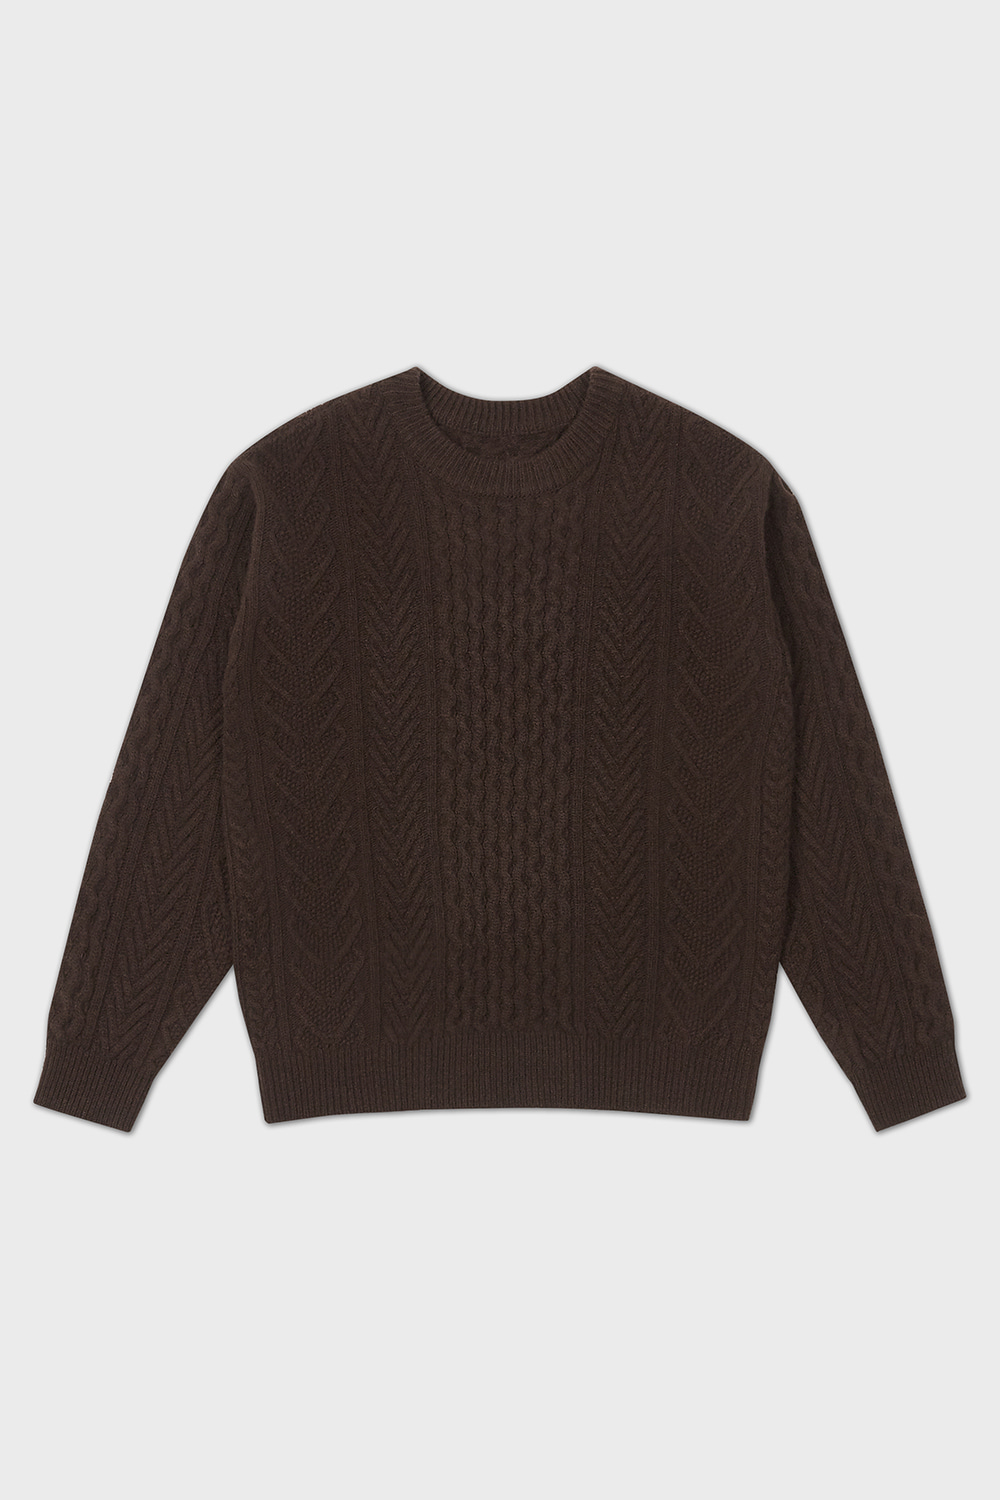 WOOL CABLE KNIT (BROWN)